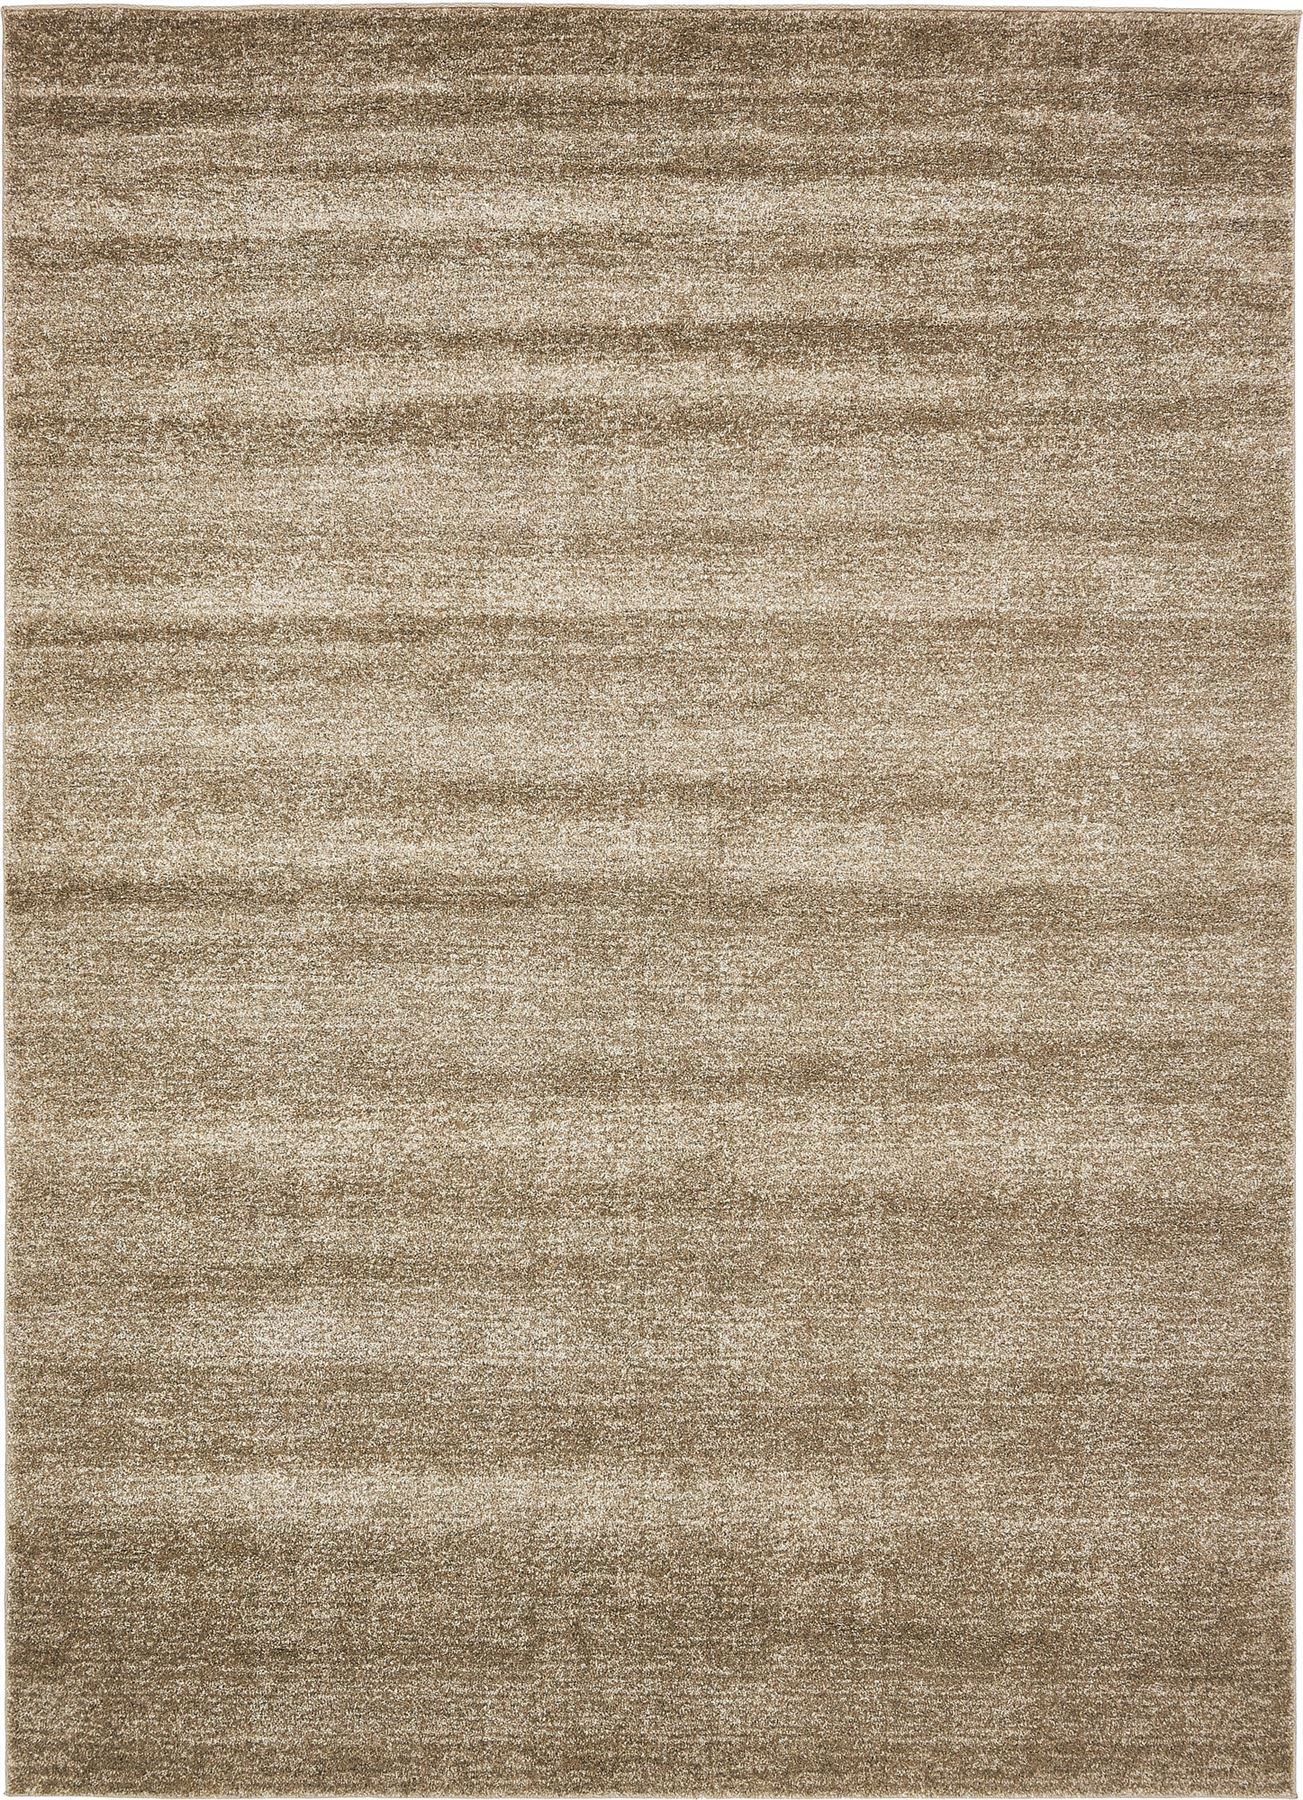 Warm Rugs Of Contemporary Area Rug Solid Plain Soft Large Warm Carpet